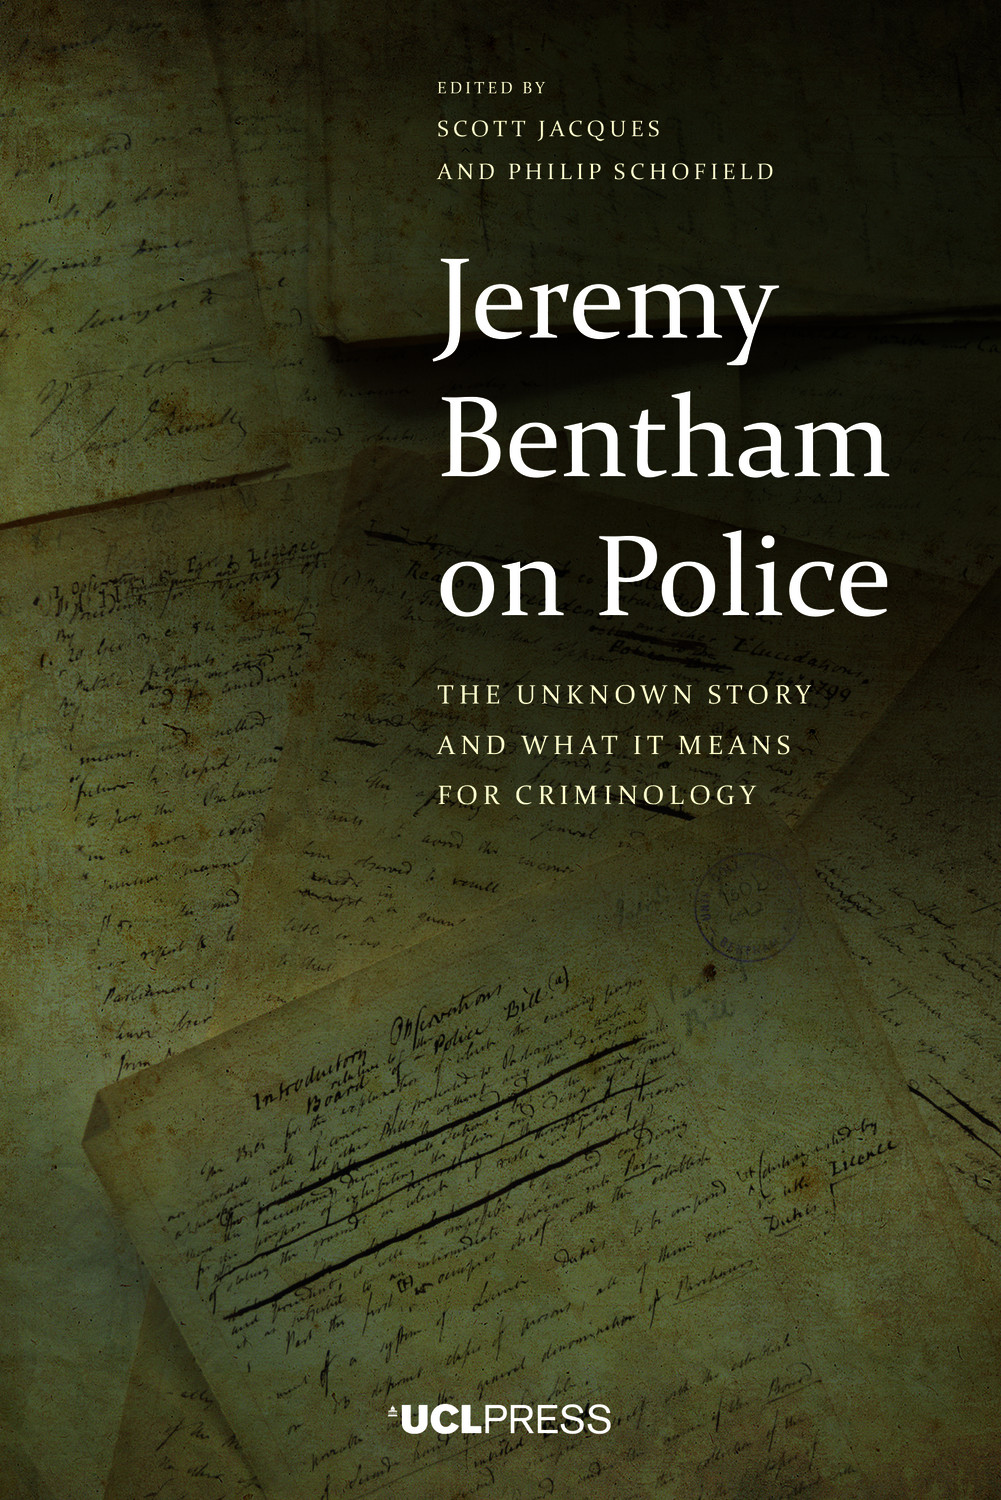 Jeremy Bentham on Police